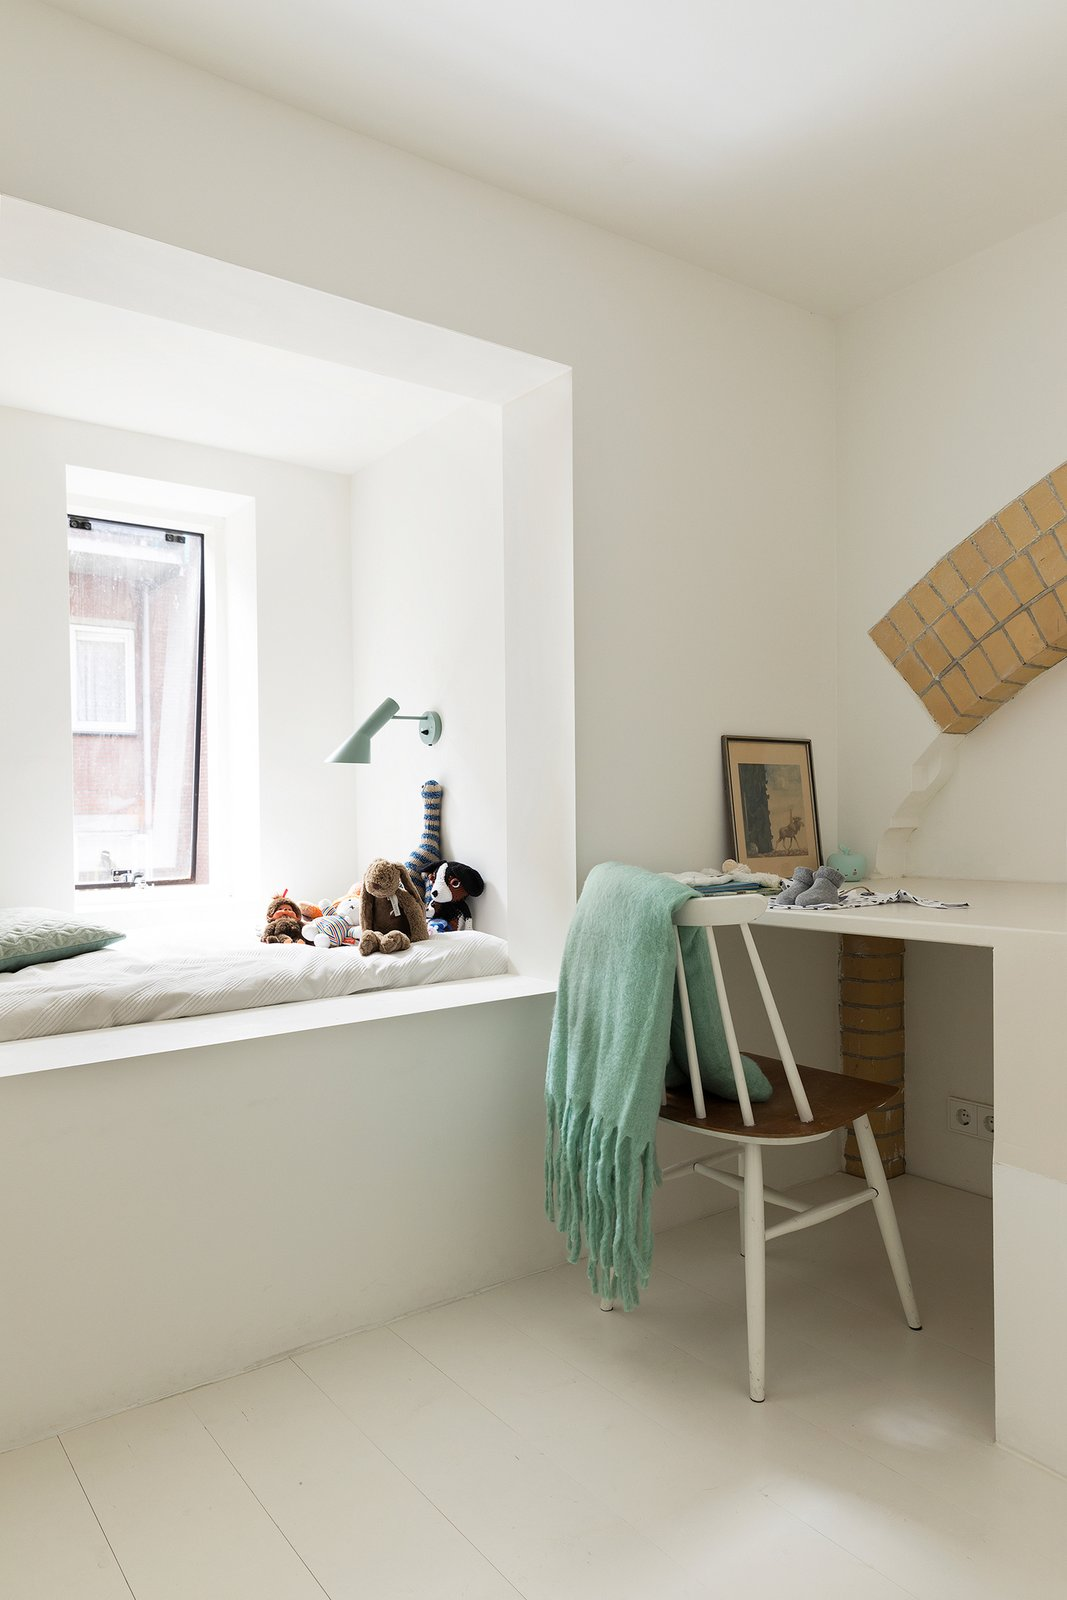 Kids, Chair, Painted Wood, Bed, Lamps, Bedroom, and Neutral A child's bedroom.  Kids Painted Wood Photos from A 20th-Century Dutch Schoolhouse Now Holds a Series of Airy Lofts